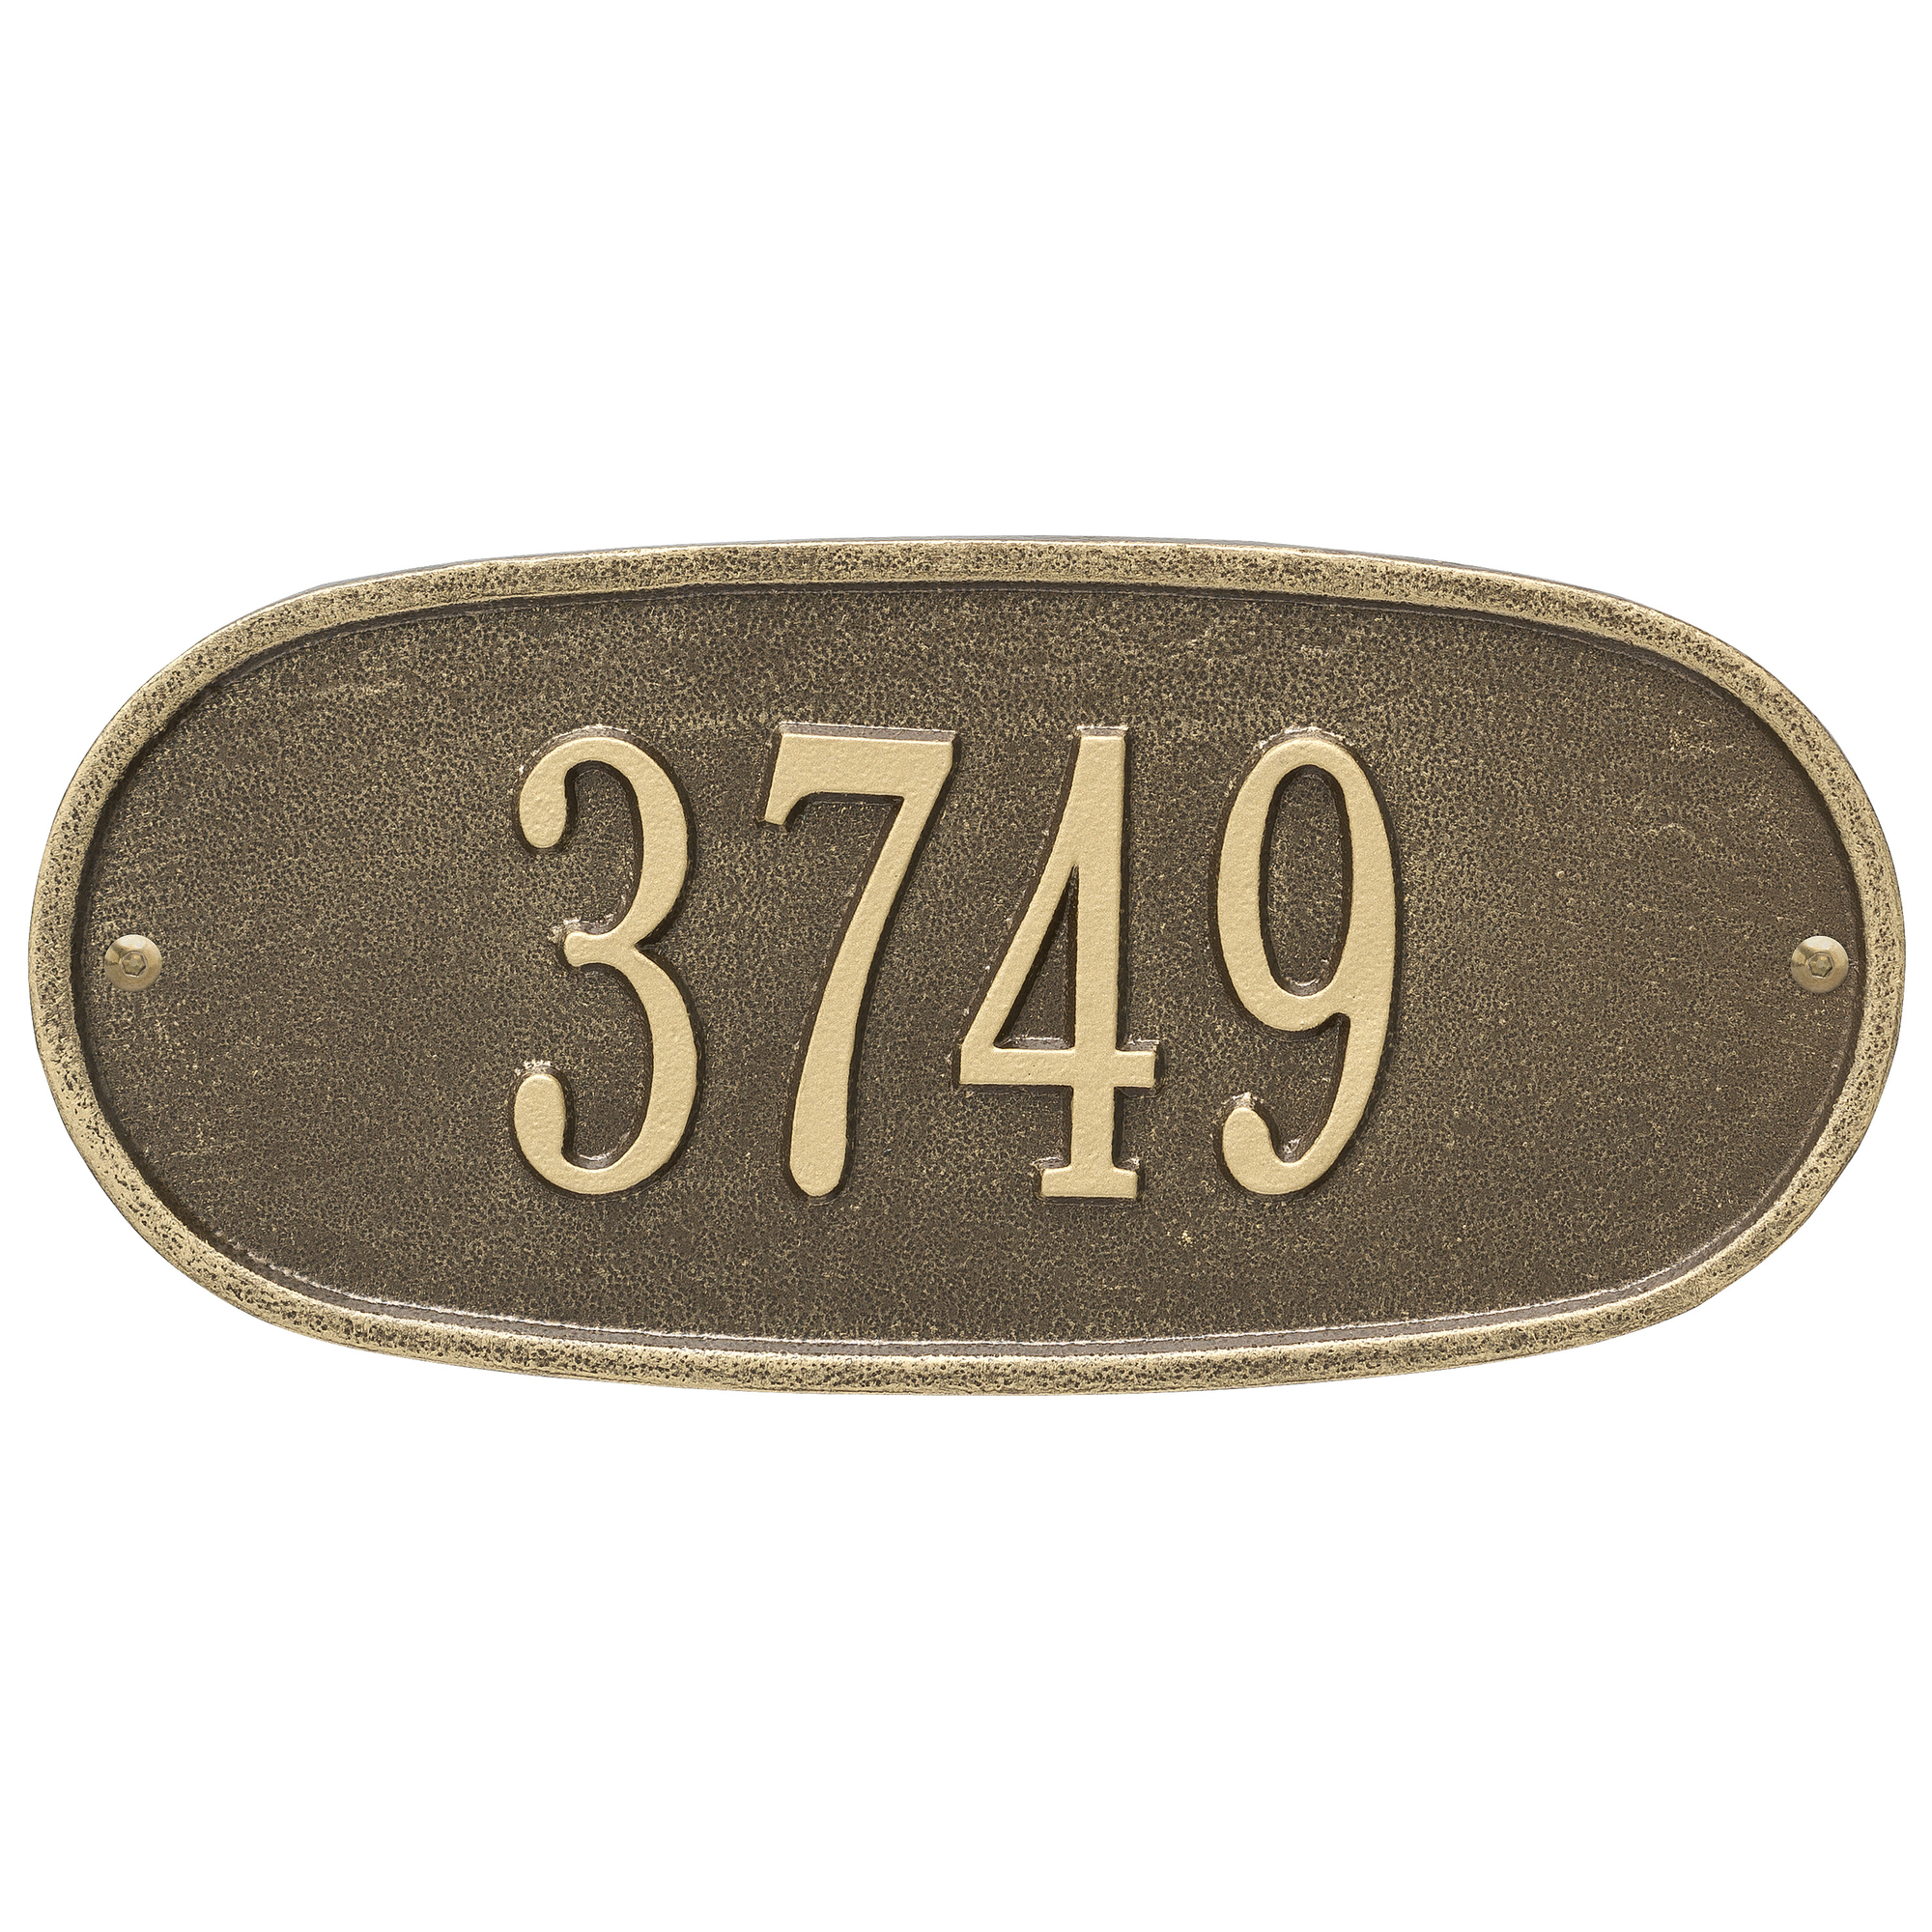 Personalized Whitehall Products Oval 1-Line Standard Wall Plaque in Antique Brass